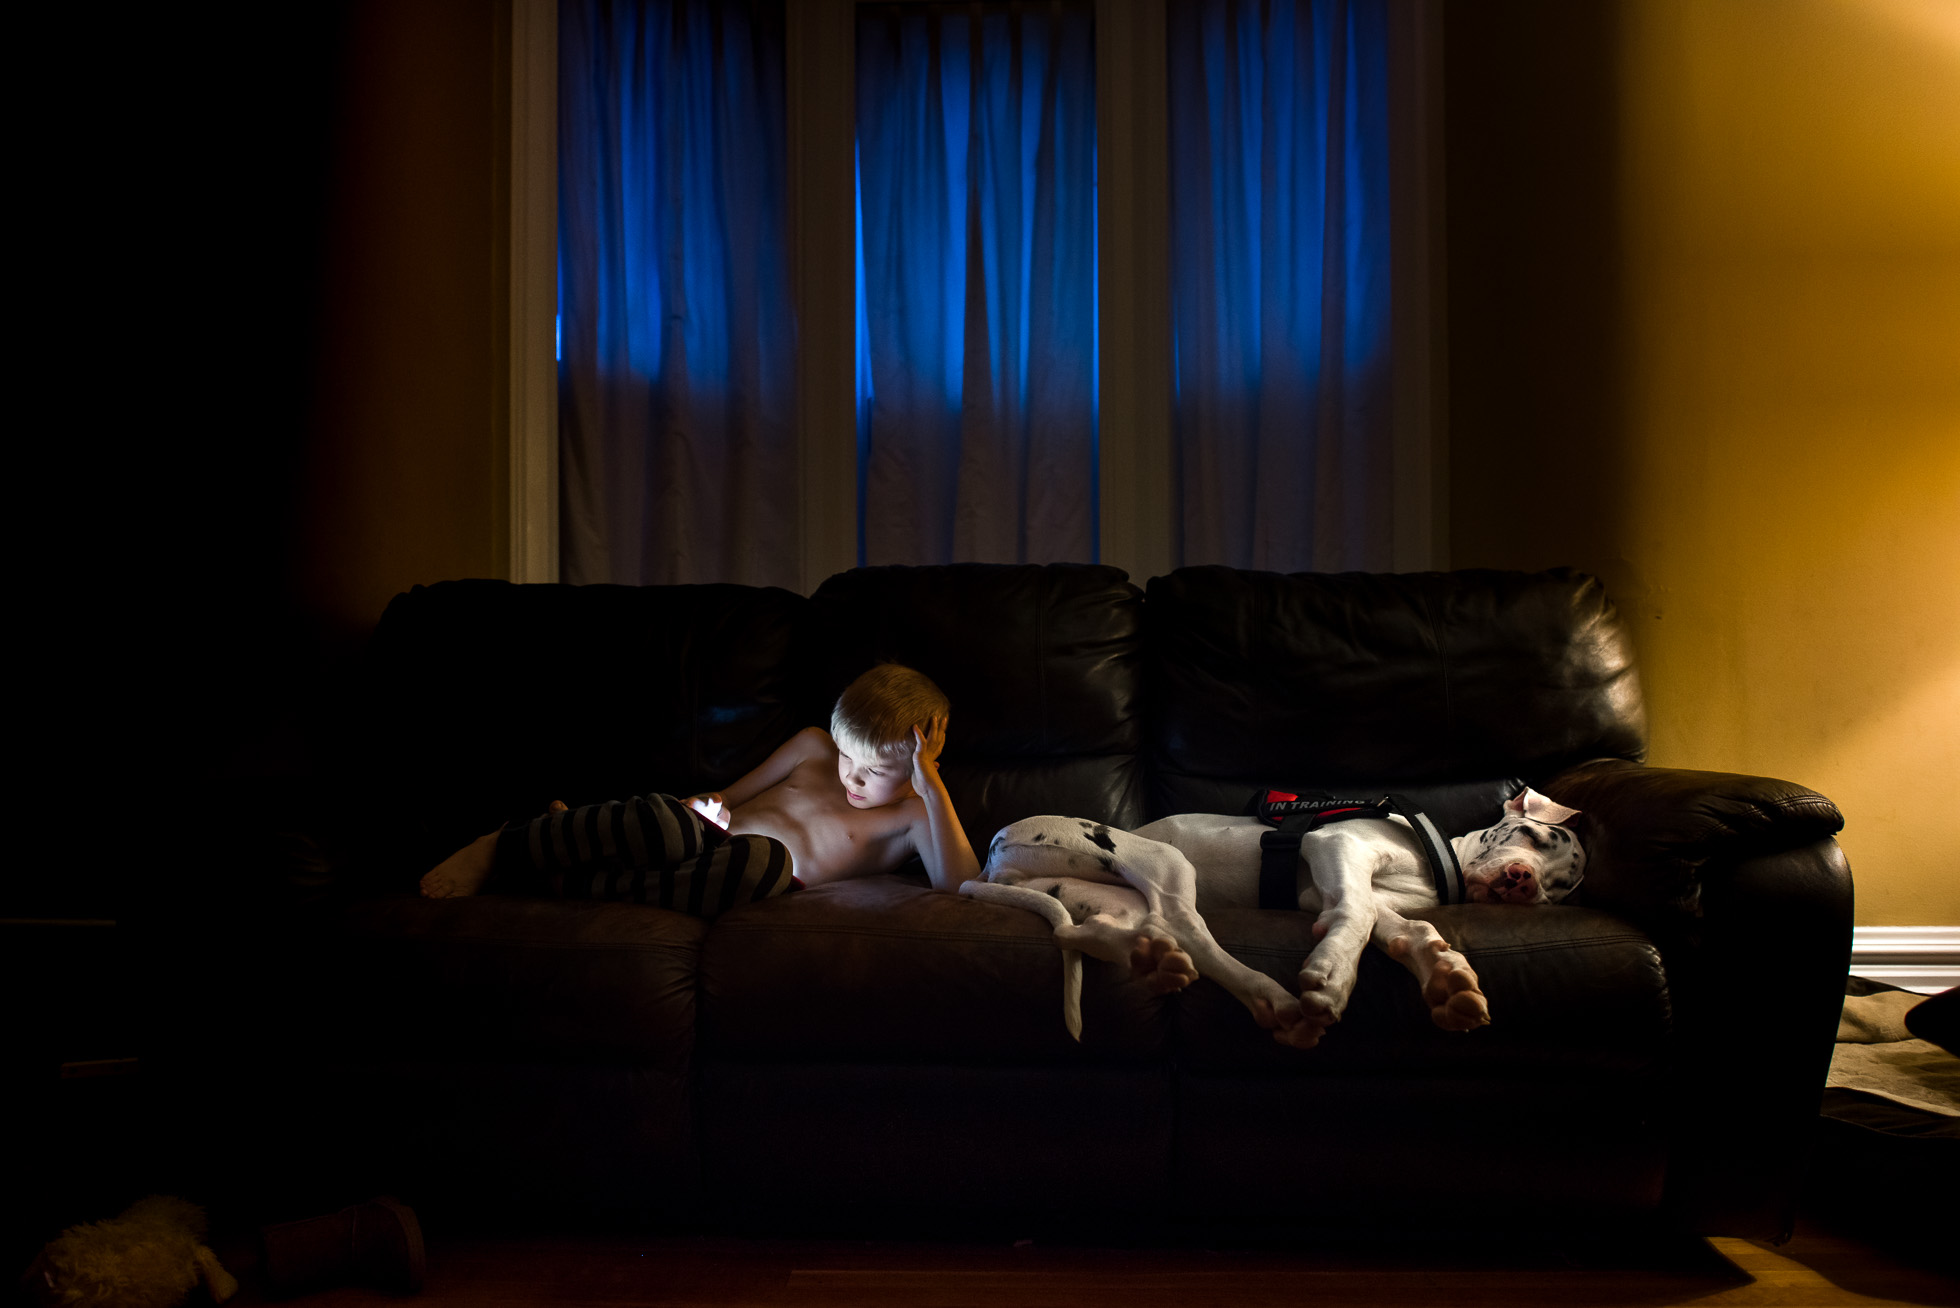 yellow-blue-mixed-lighting-in-candid-low-light-photograph-of-little-boy-with-ipad-and-harlequin-great-dane-sleeping-by-sarah-wilkerson-4983